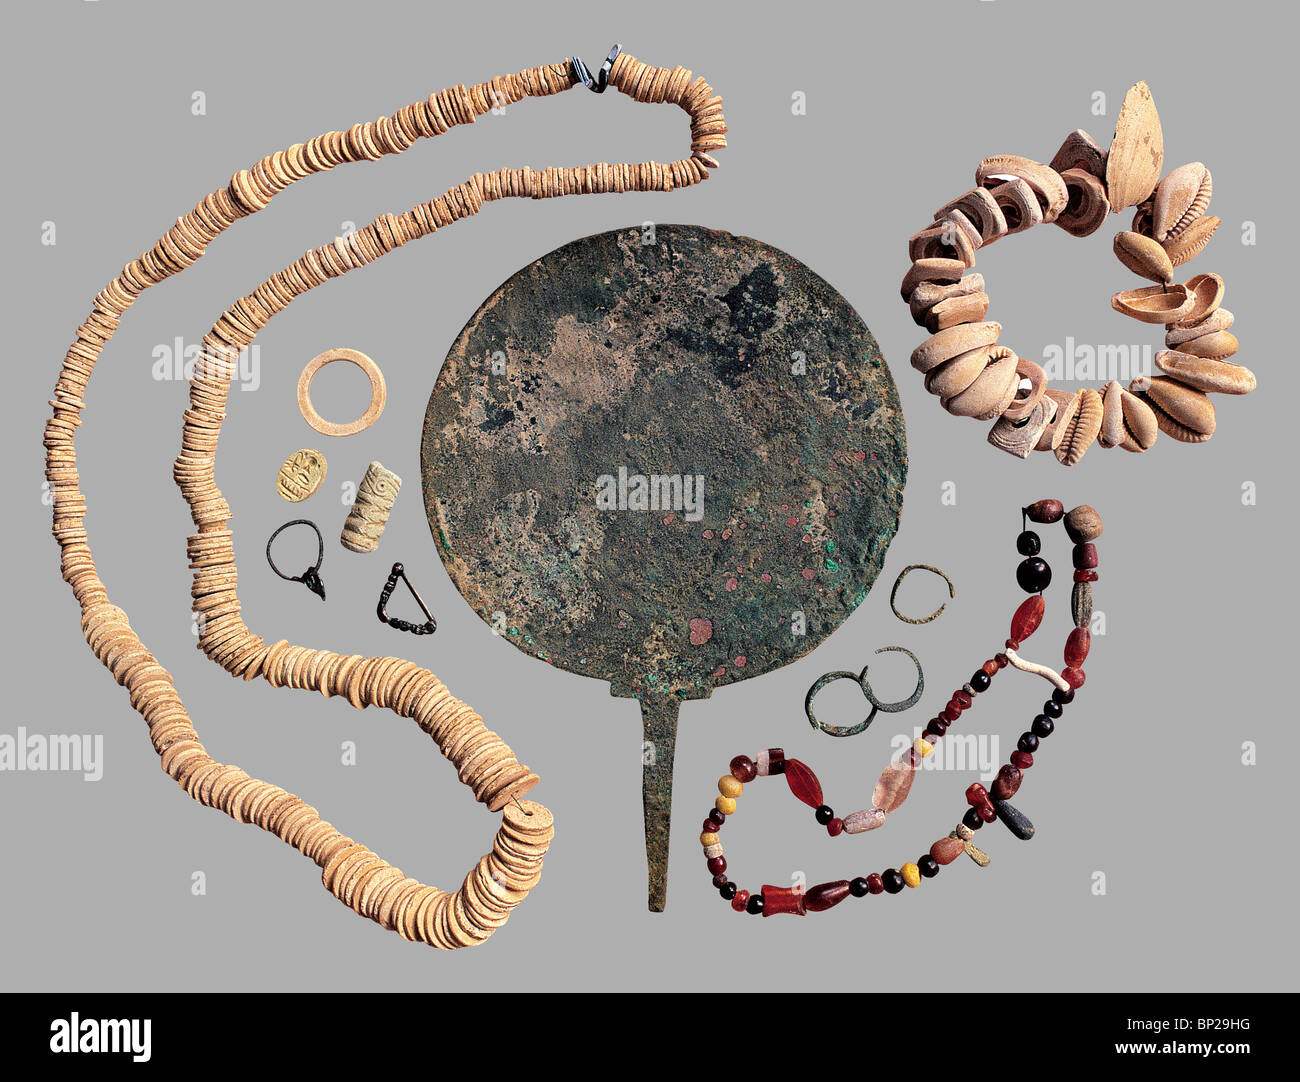 BRONZE MIRROR, RINGS AND NECKLACES DATING FROM THE 4 - 3RD C. B.C. FOUND IN A TOMB IN SAMARIA - Stock Image